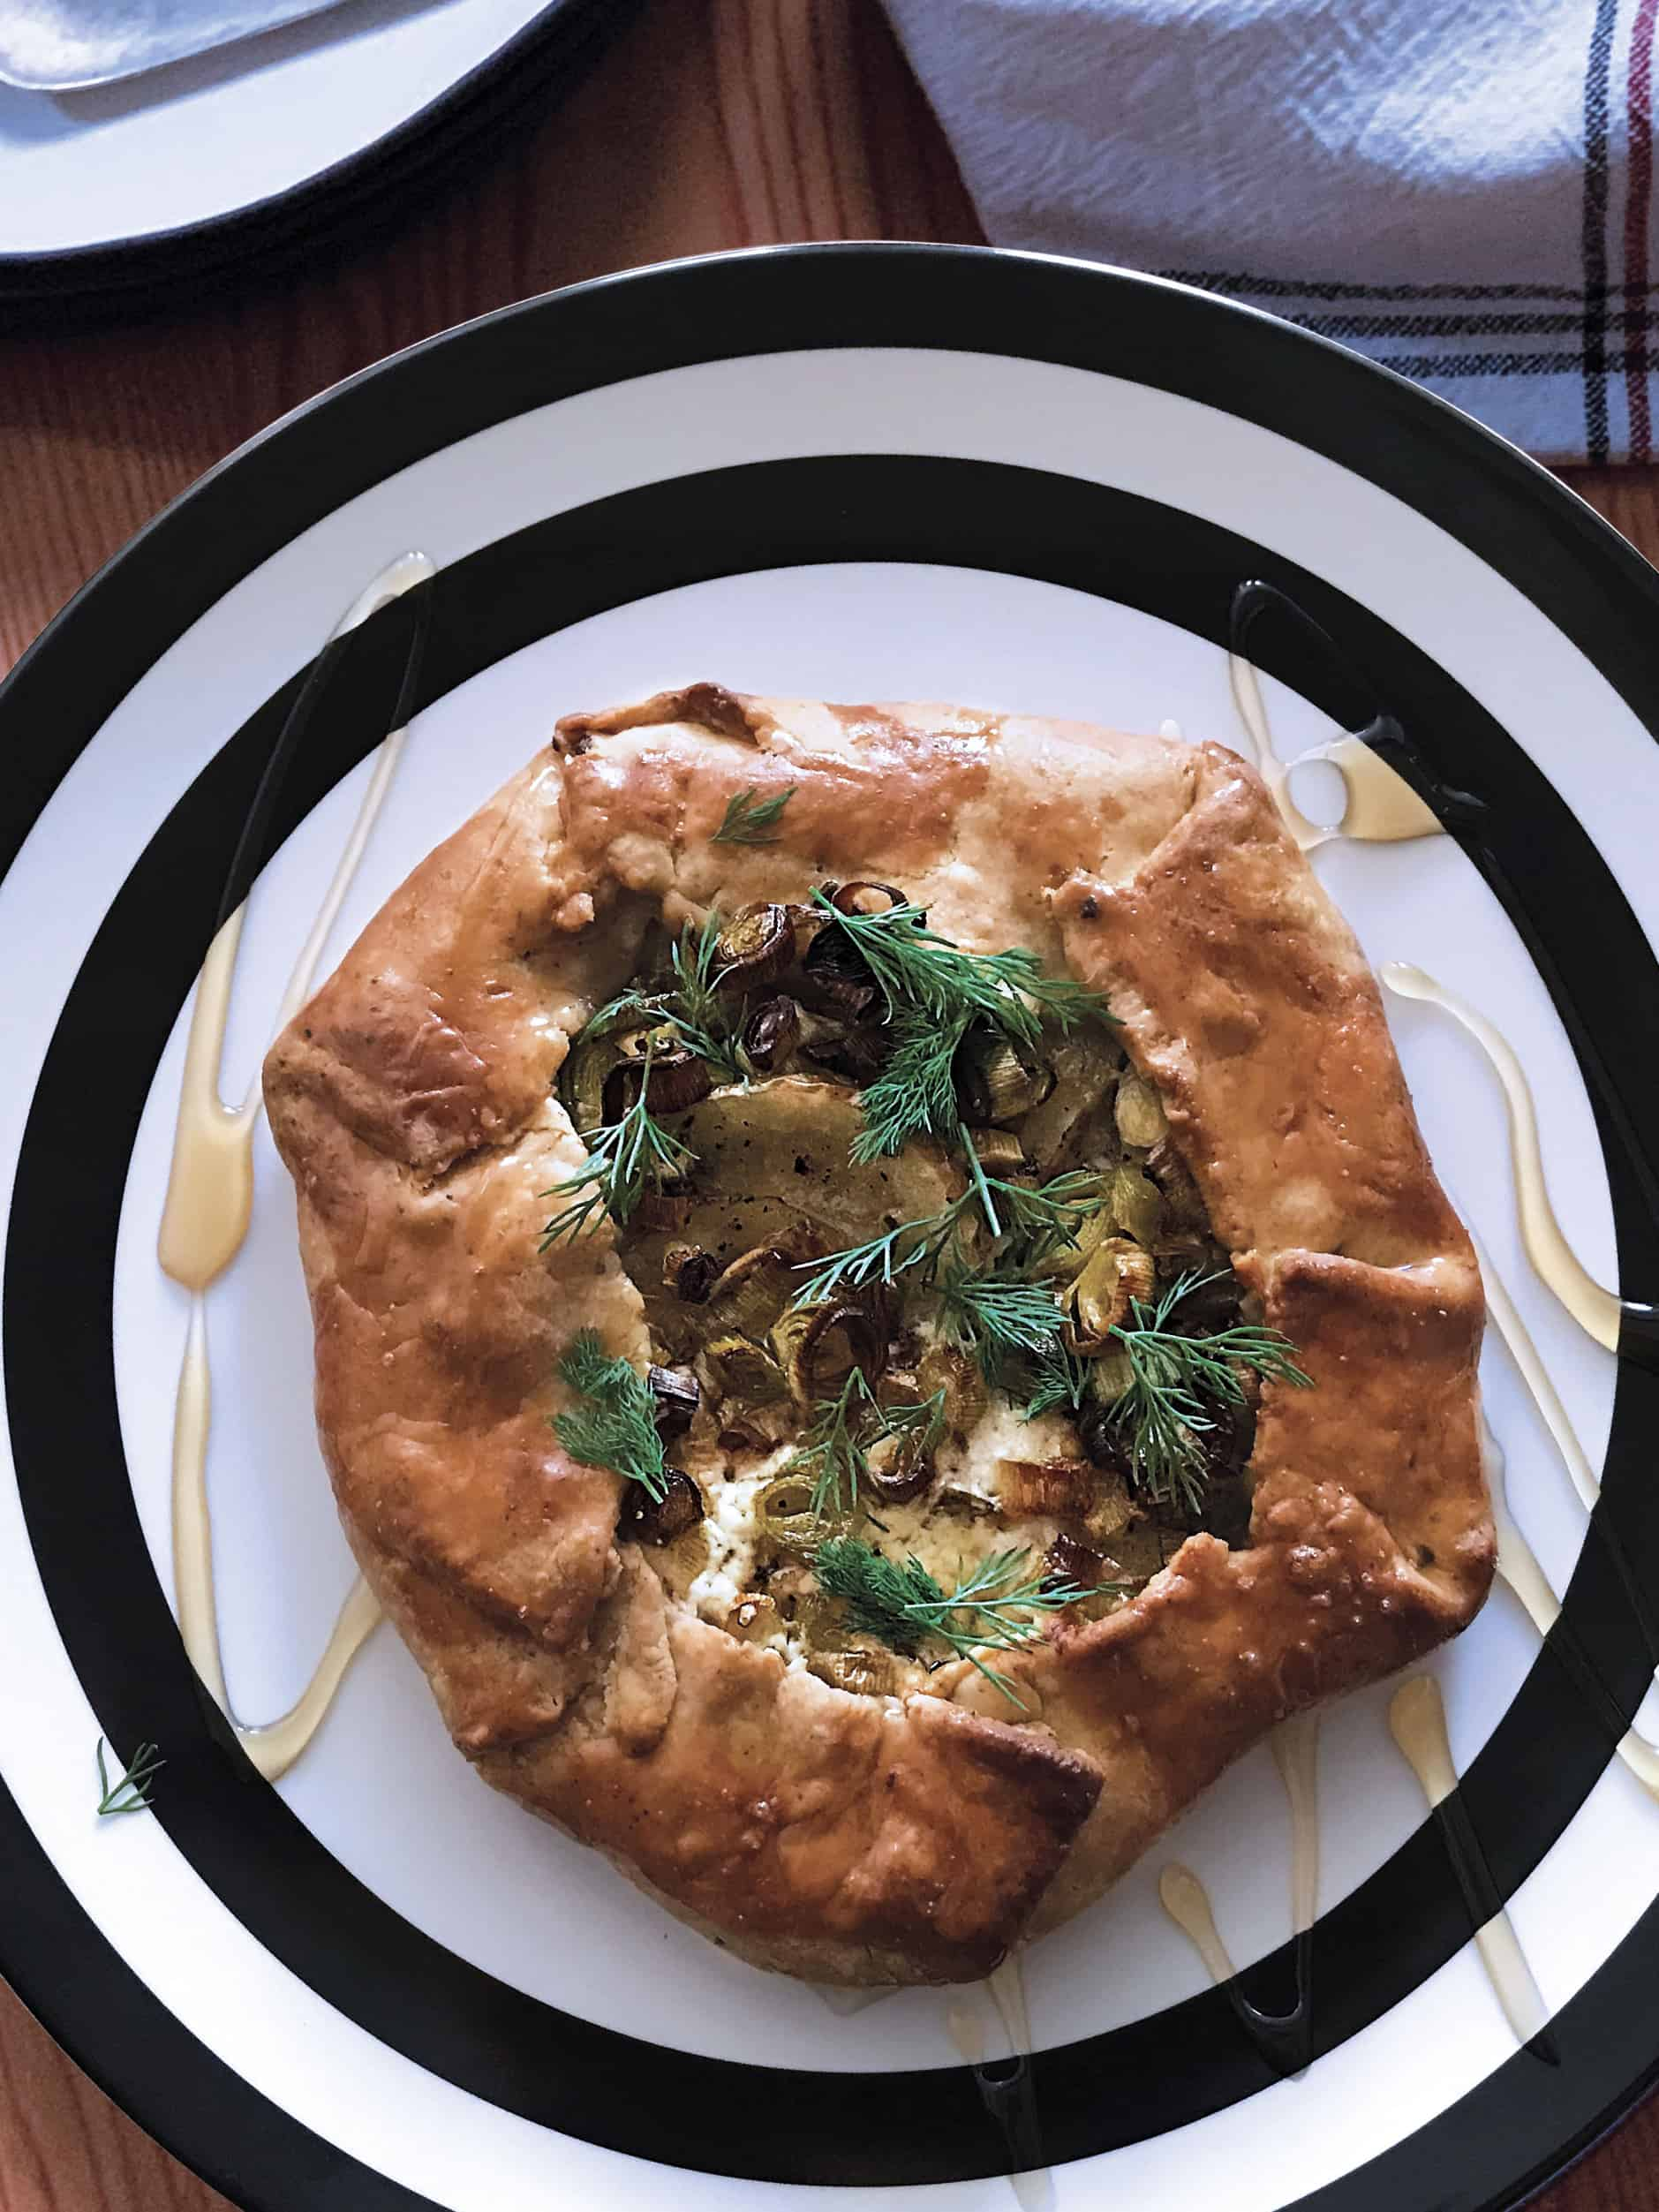 A leek and potato galette on a plate.